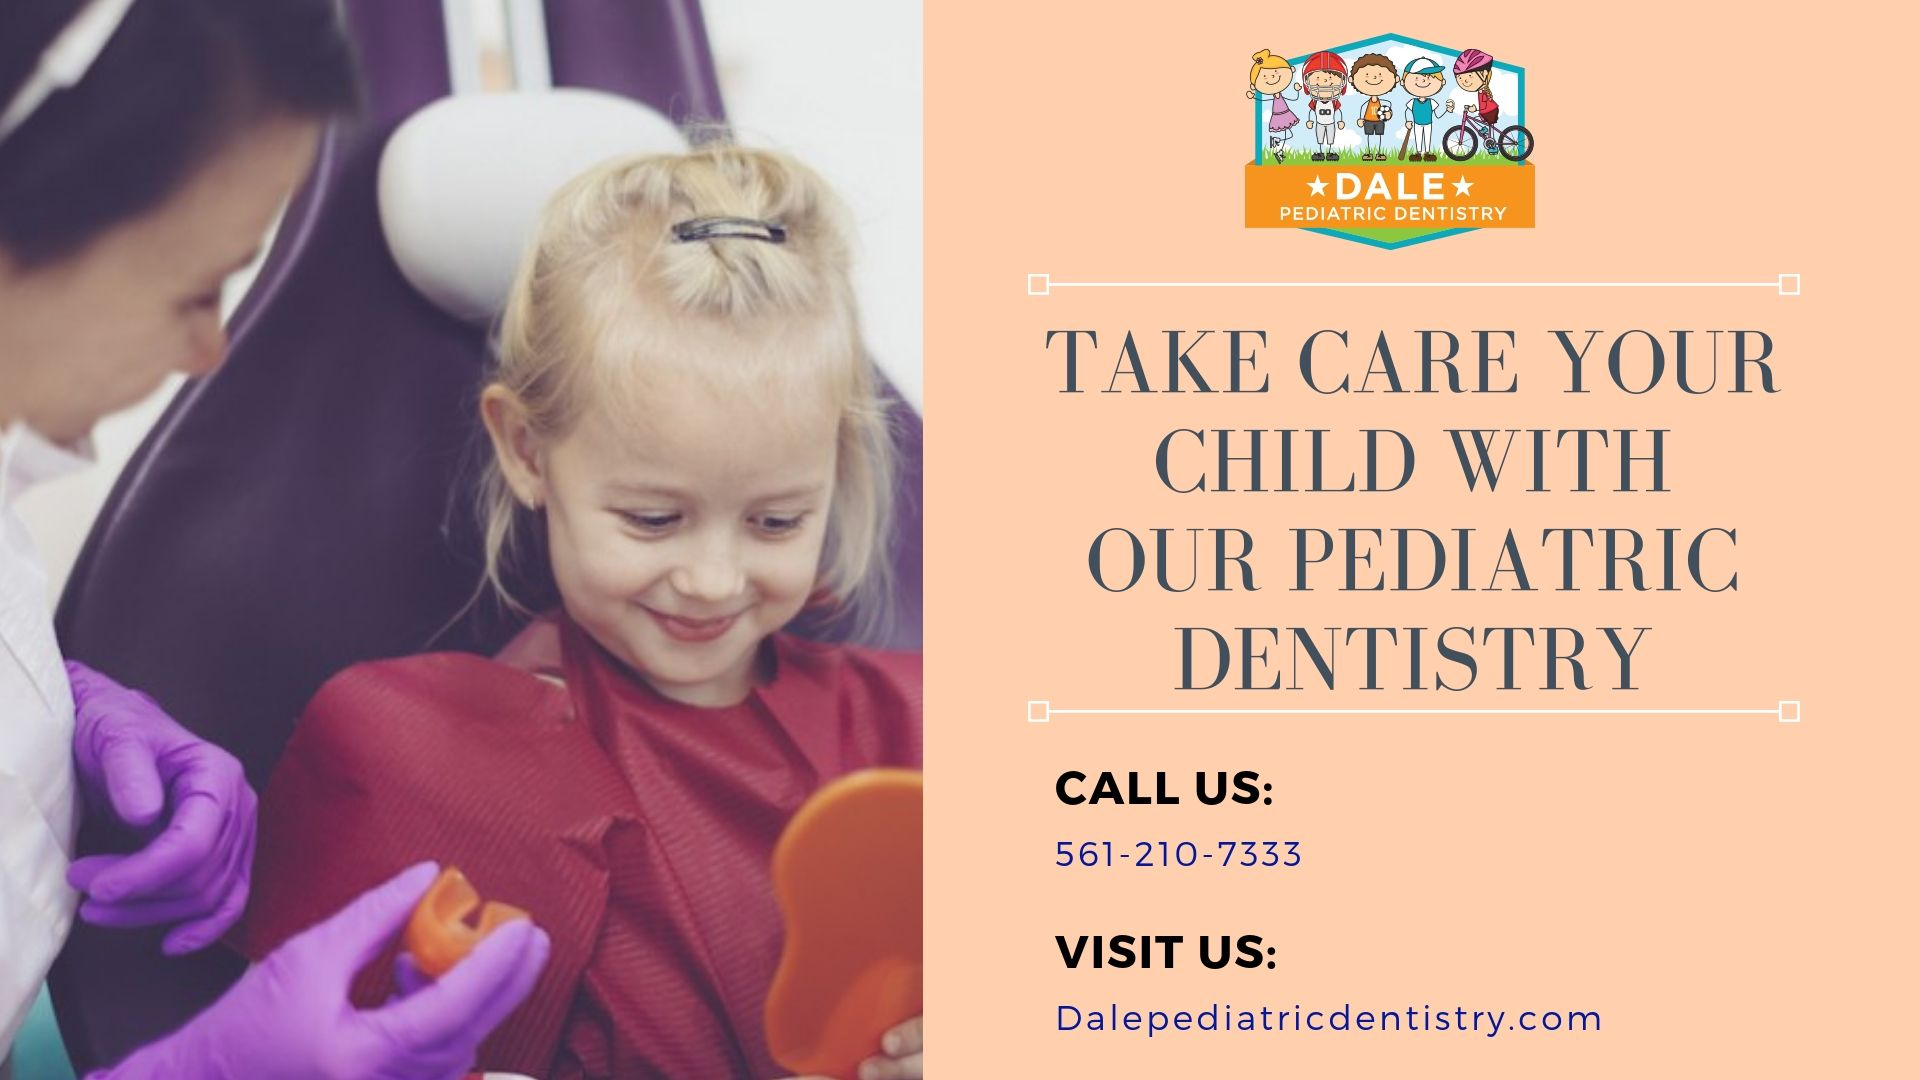 Are you looking for the perfect kids dentistry? At Dale